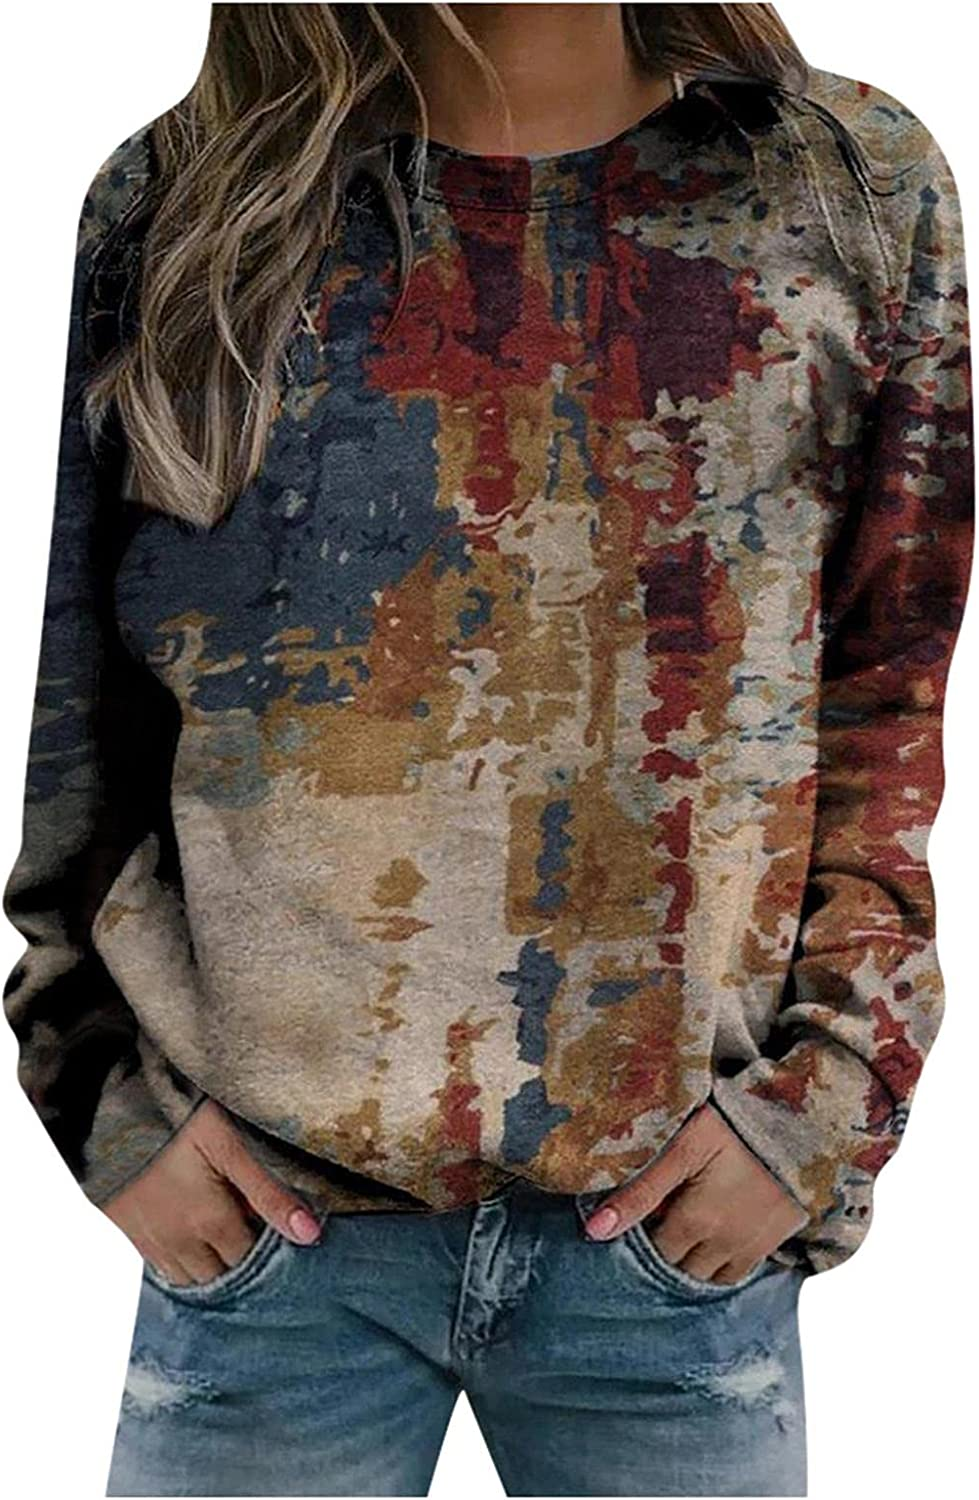 Long Sleeve Shirts for Women,Vintage Graphic Sweatshirts Loose Casual Crewneck Sweaters Tops